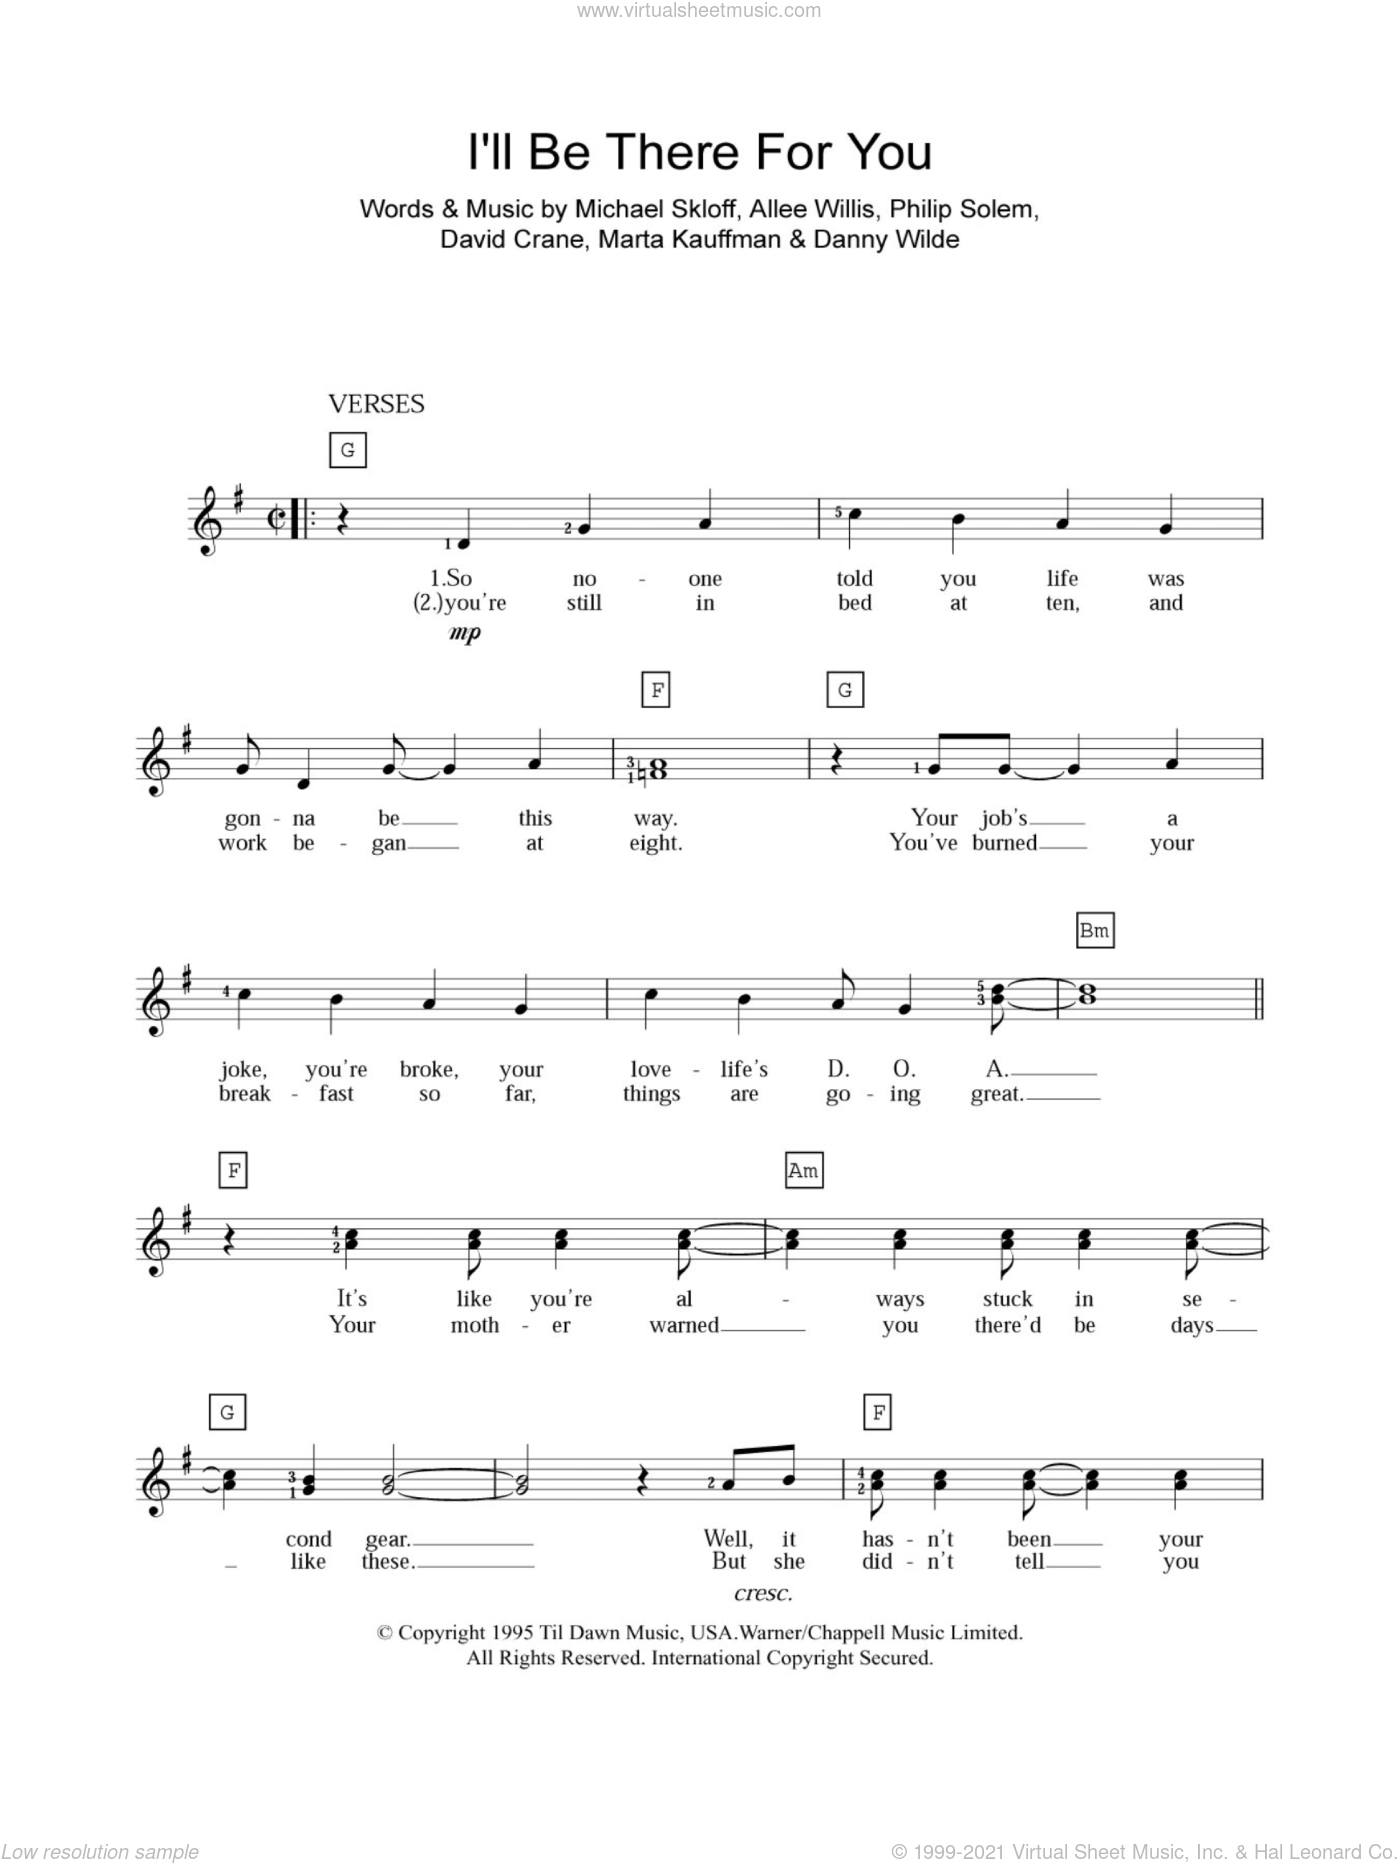 I'll Be There For You sheet music for piano solo (chords, lyrics, melody) by The Rembrandts, Allee Willis, Danny Wilde, David Crane, Marta Kauffman, Michael Skloff and Philip Solem, intermediate piano (chords, lyrics, melody)